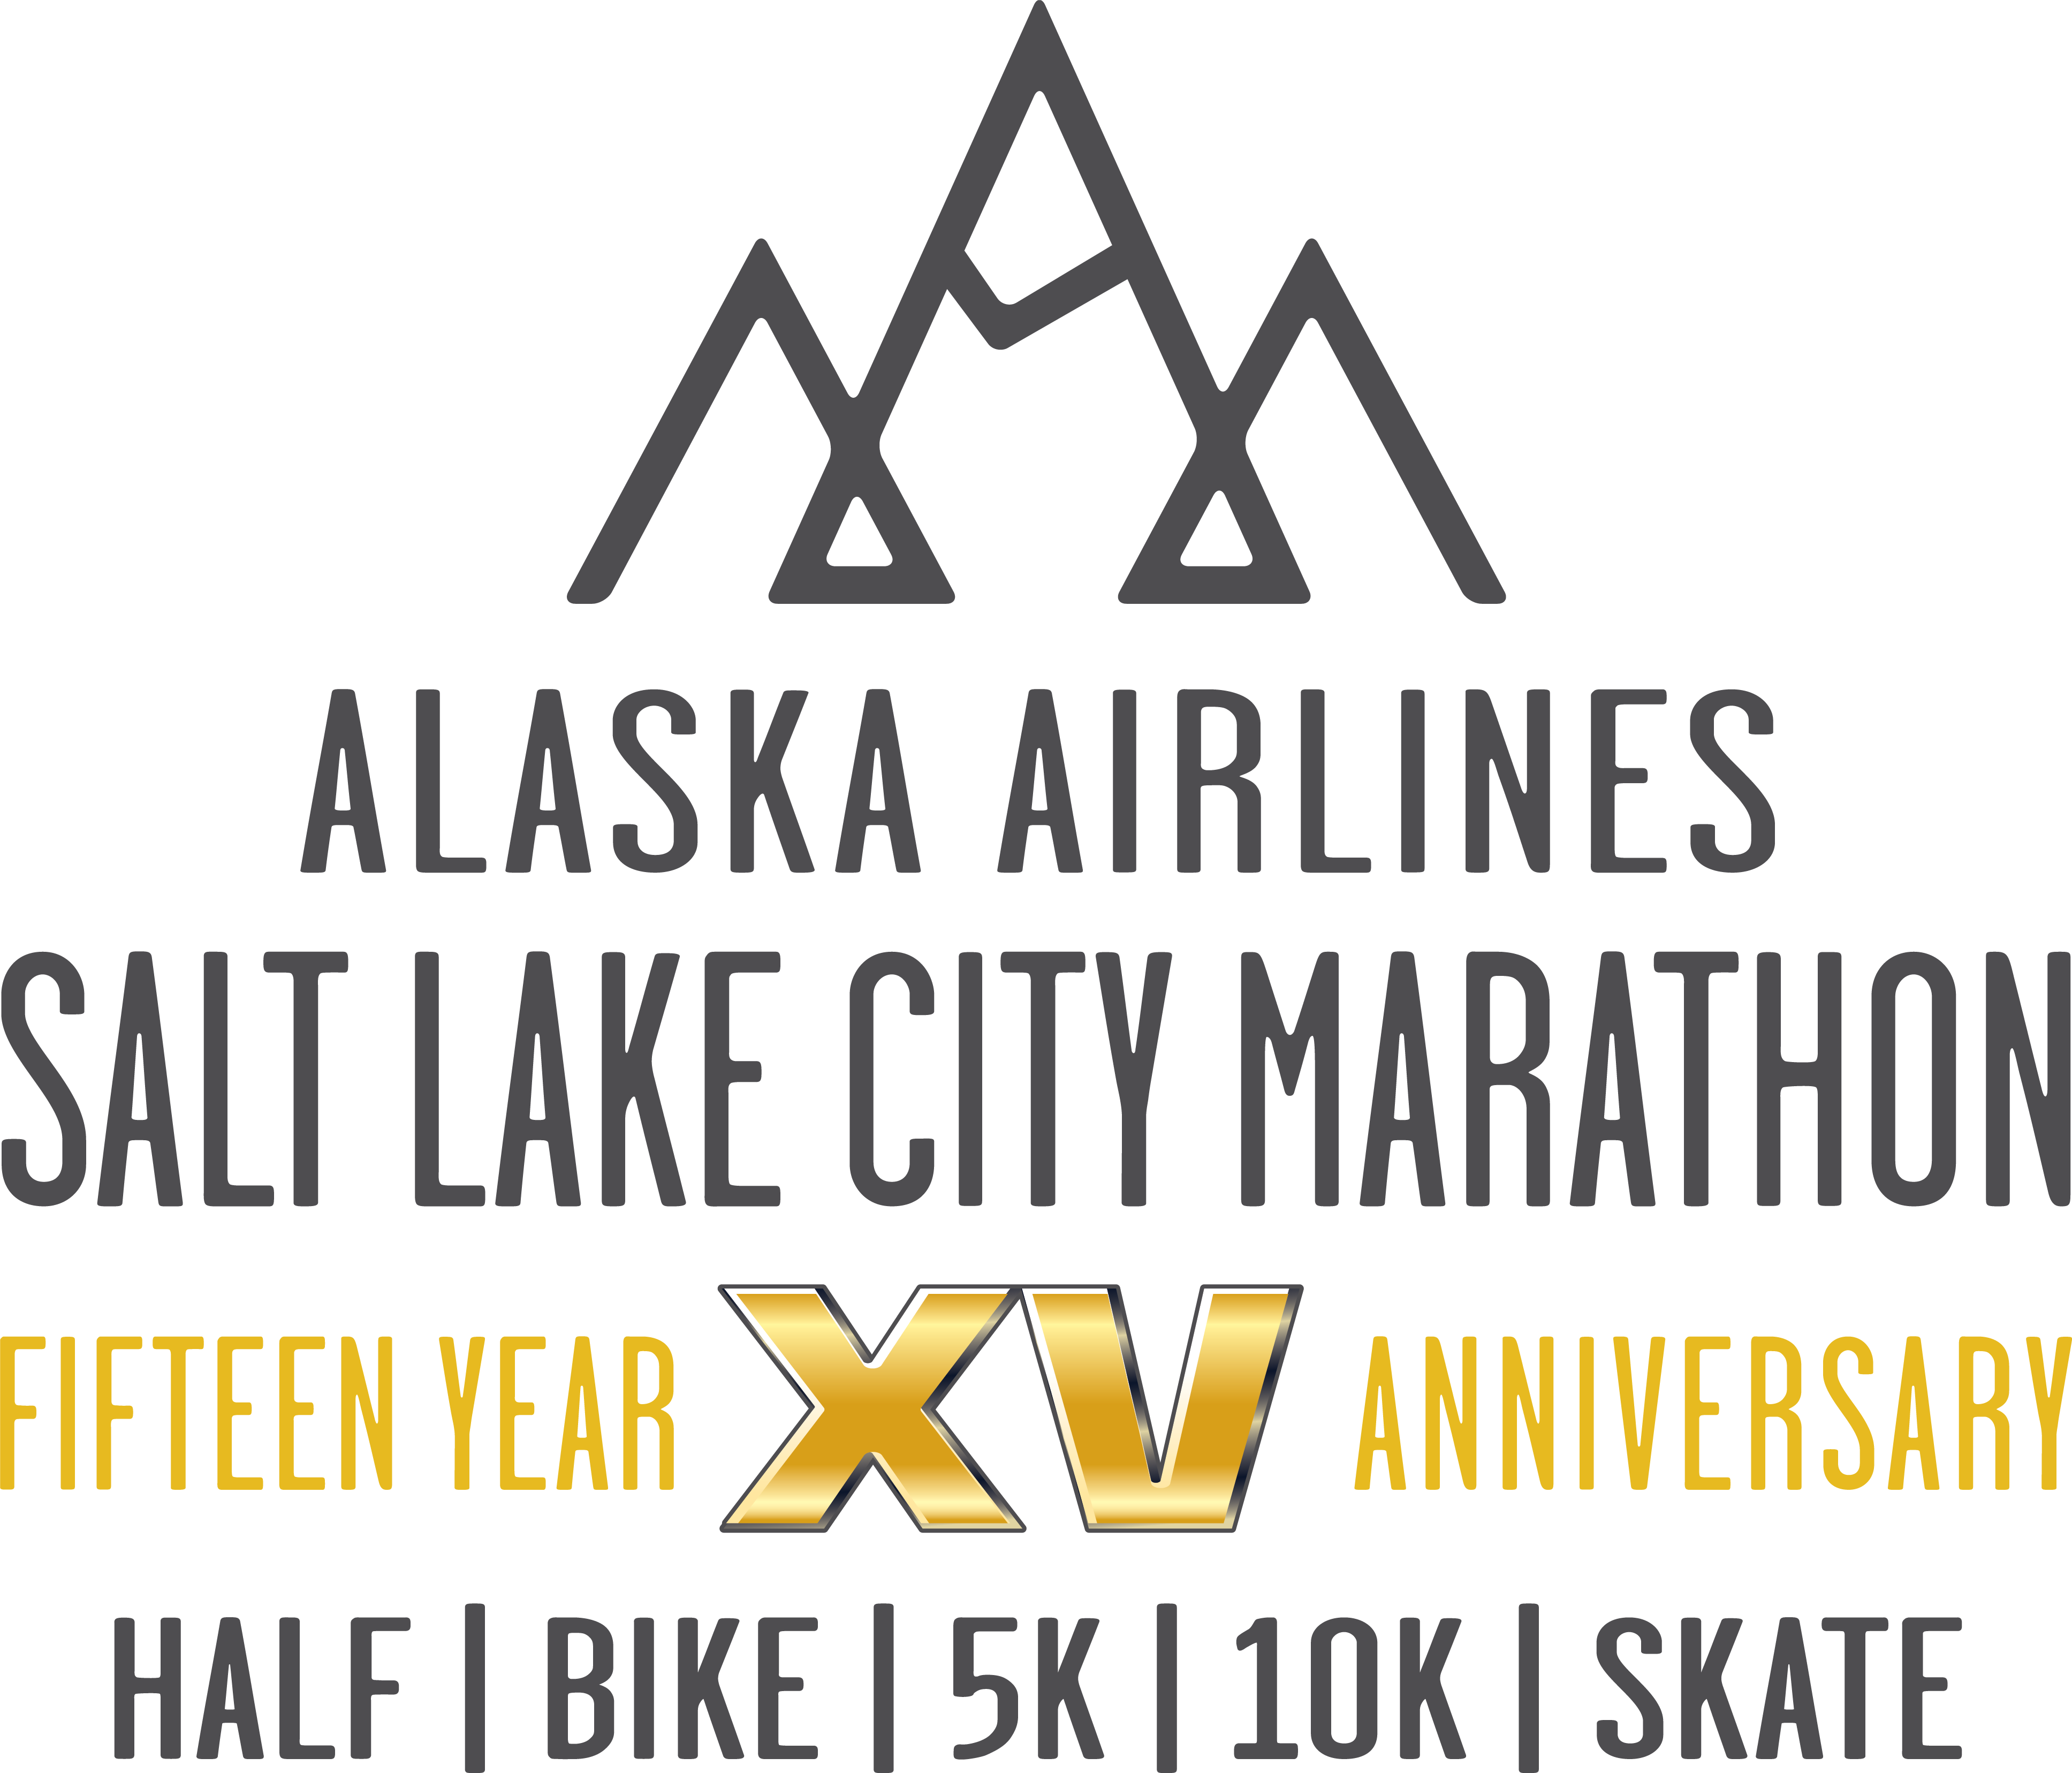 Salt Lake City Marathon Logo